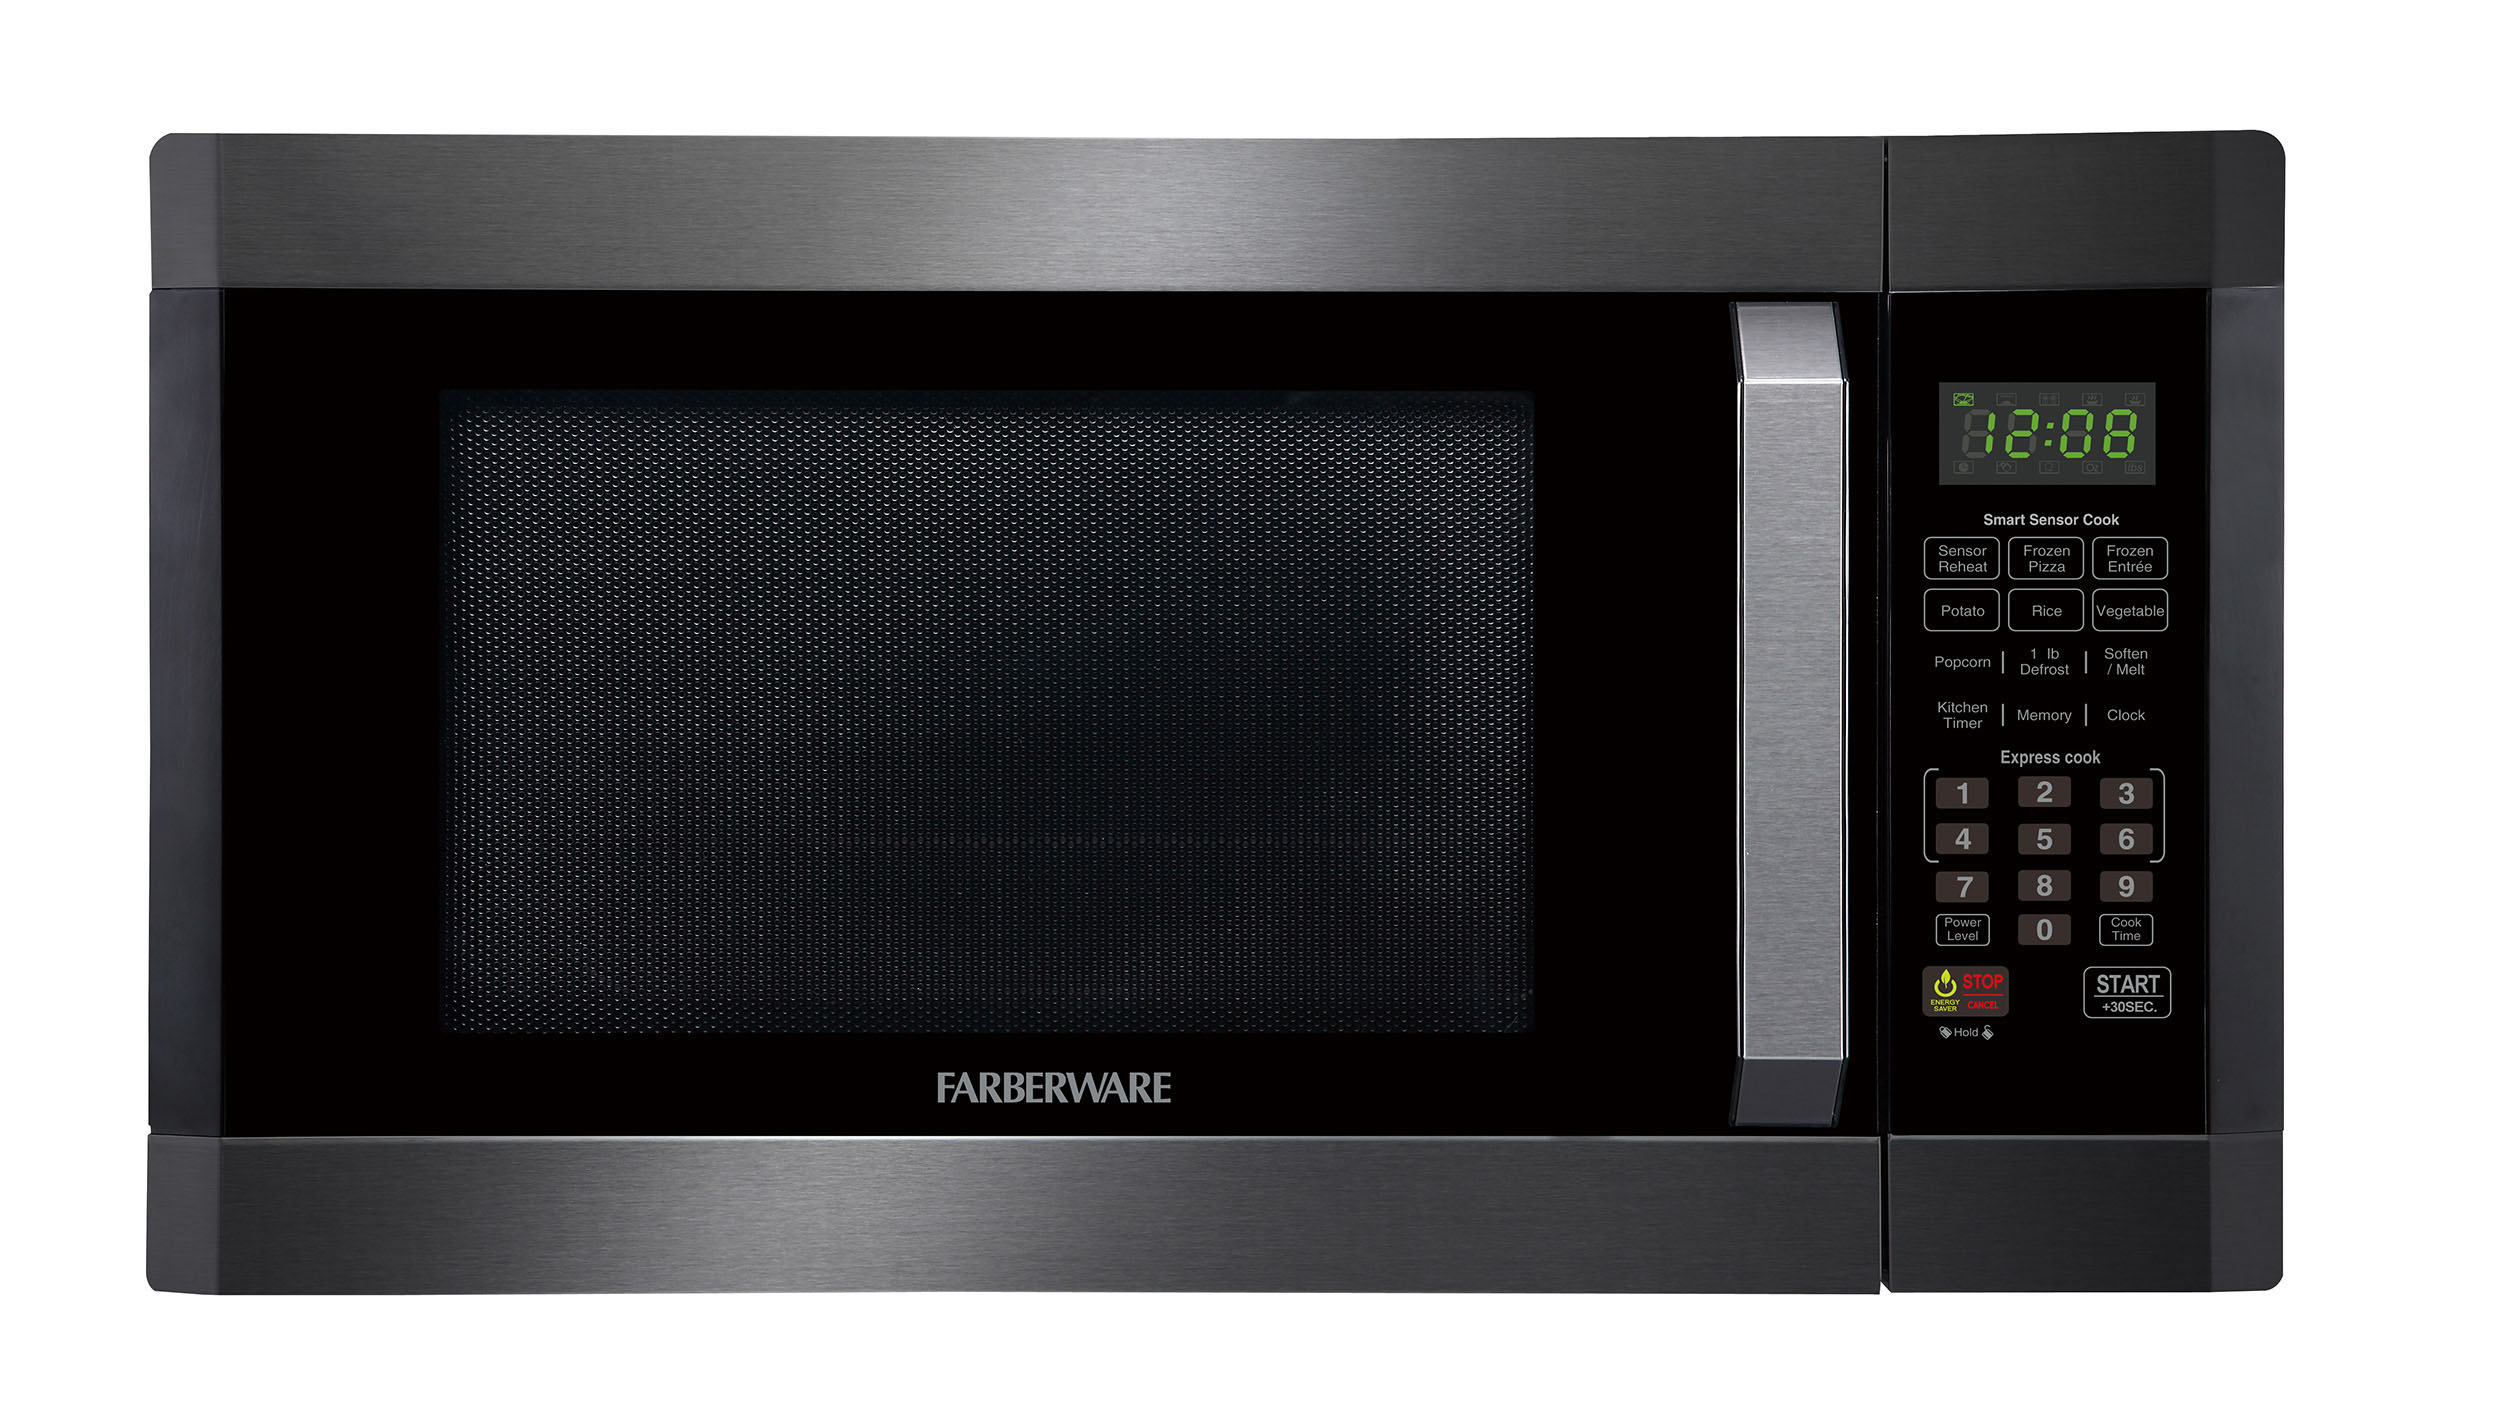 Farberware Black FMO16AHTBSD 1.6 Cu. Ft Microwave Oven with Smart Sensor, Black Stainless Steel, Green LED